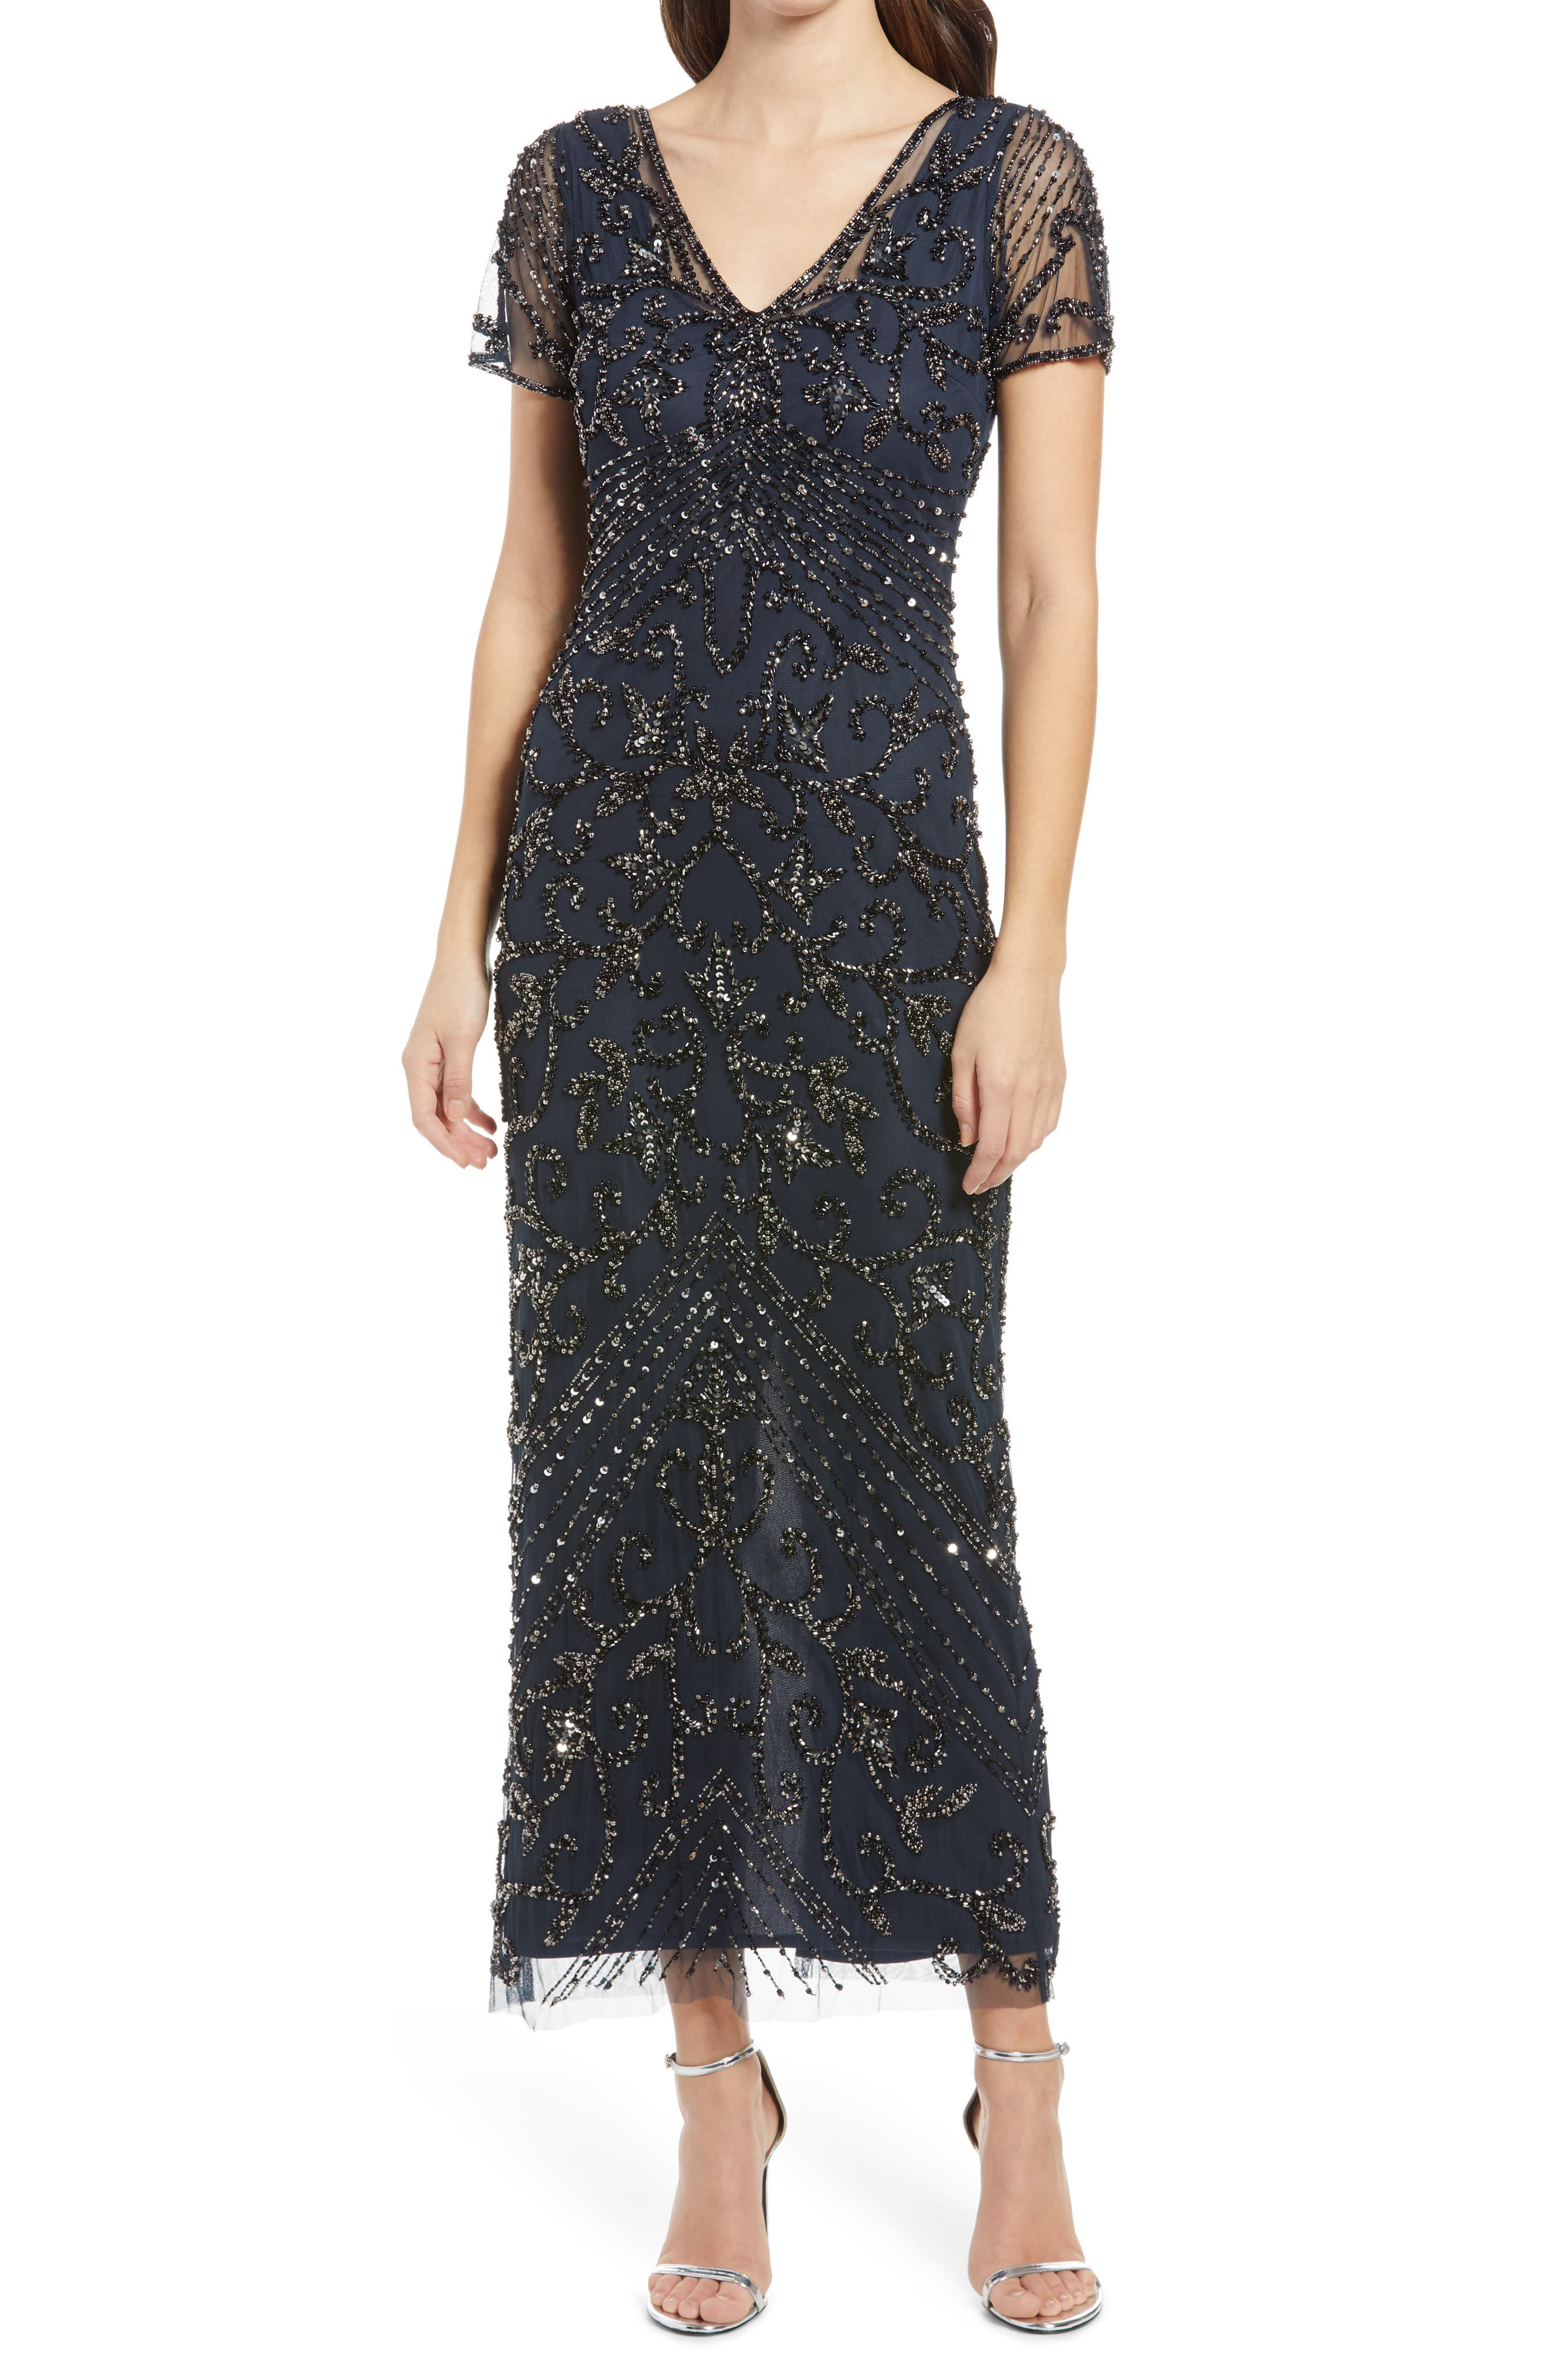 Great Gatsby Dress – Great Gatsby Dresses for Sale Womens Pisarro Nights Beaded Mesh Column Gown Size 14 - Blue $238.00 AT vintagedancer.com